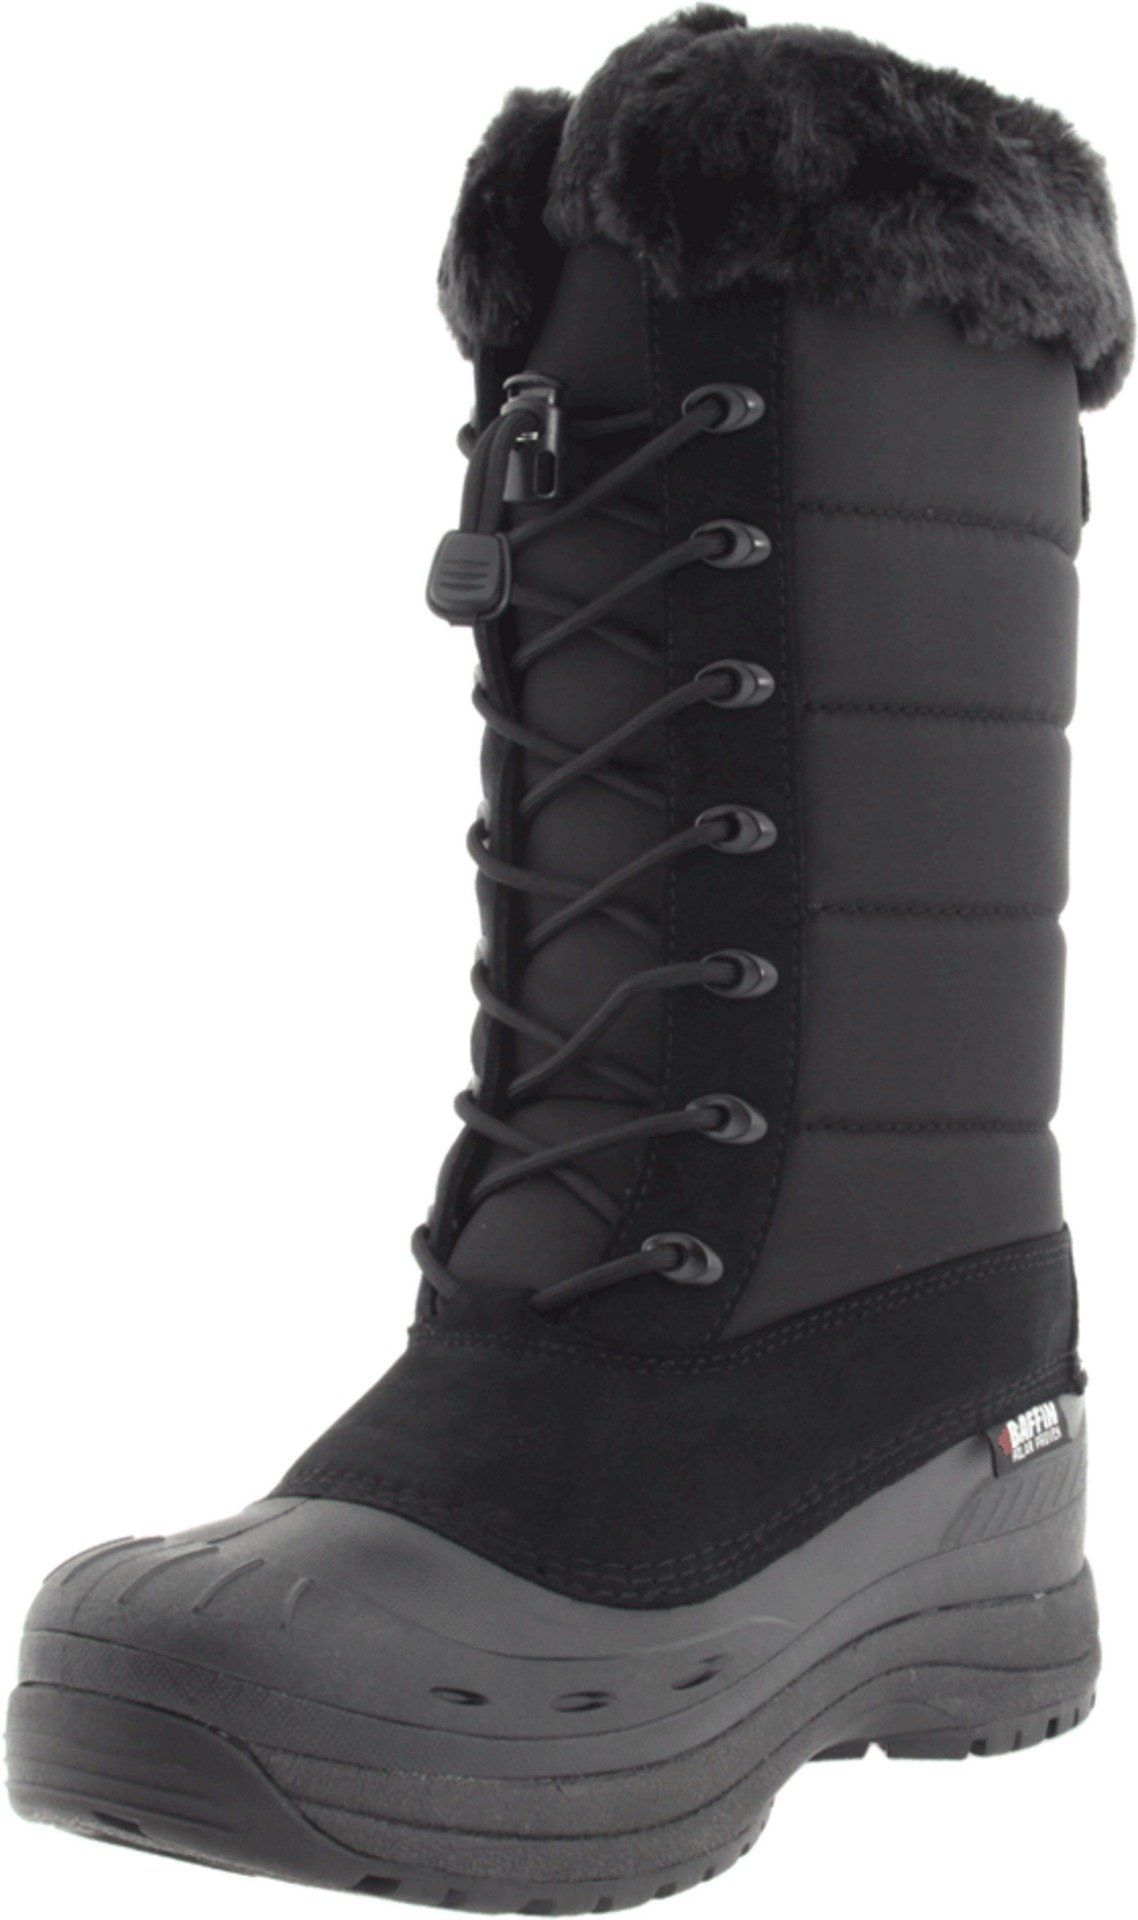 Baffin Womens Iceland Snow Bootblack11 M Us >>> Read More